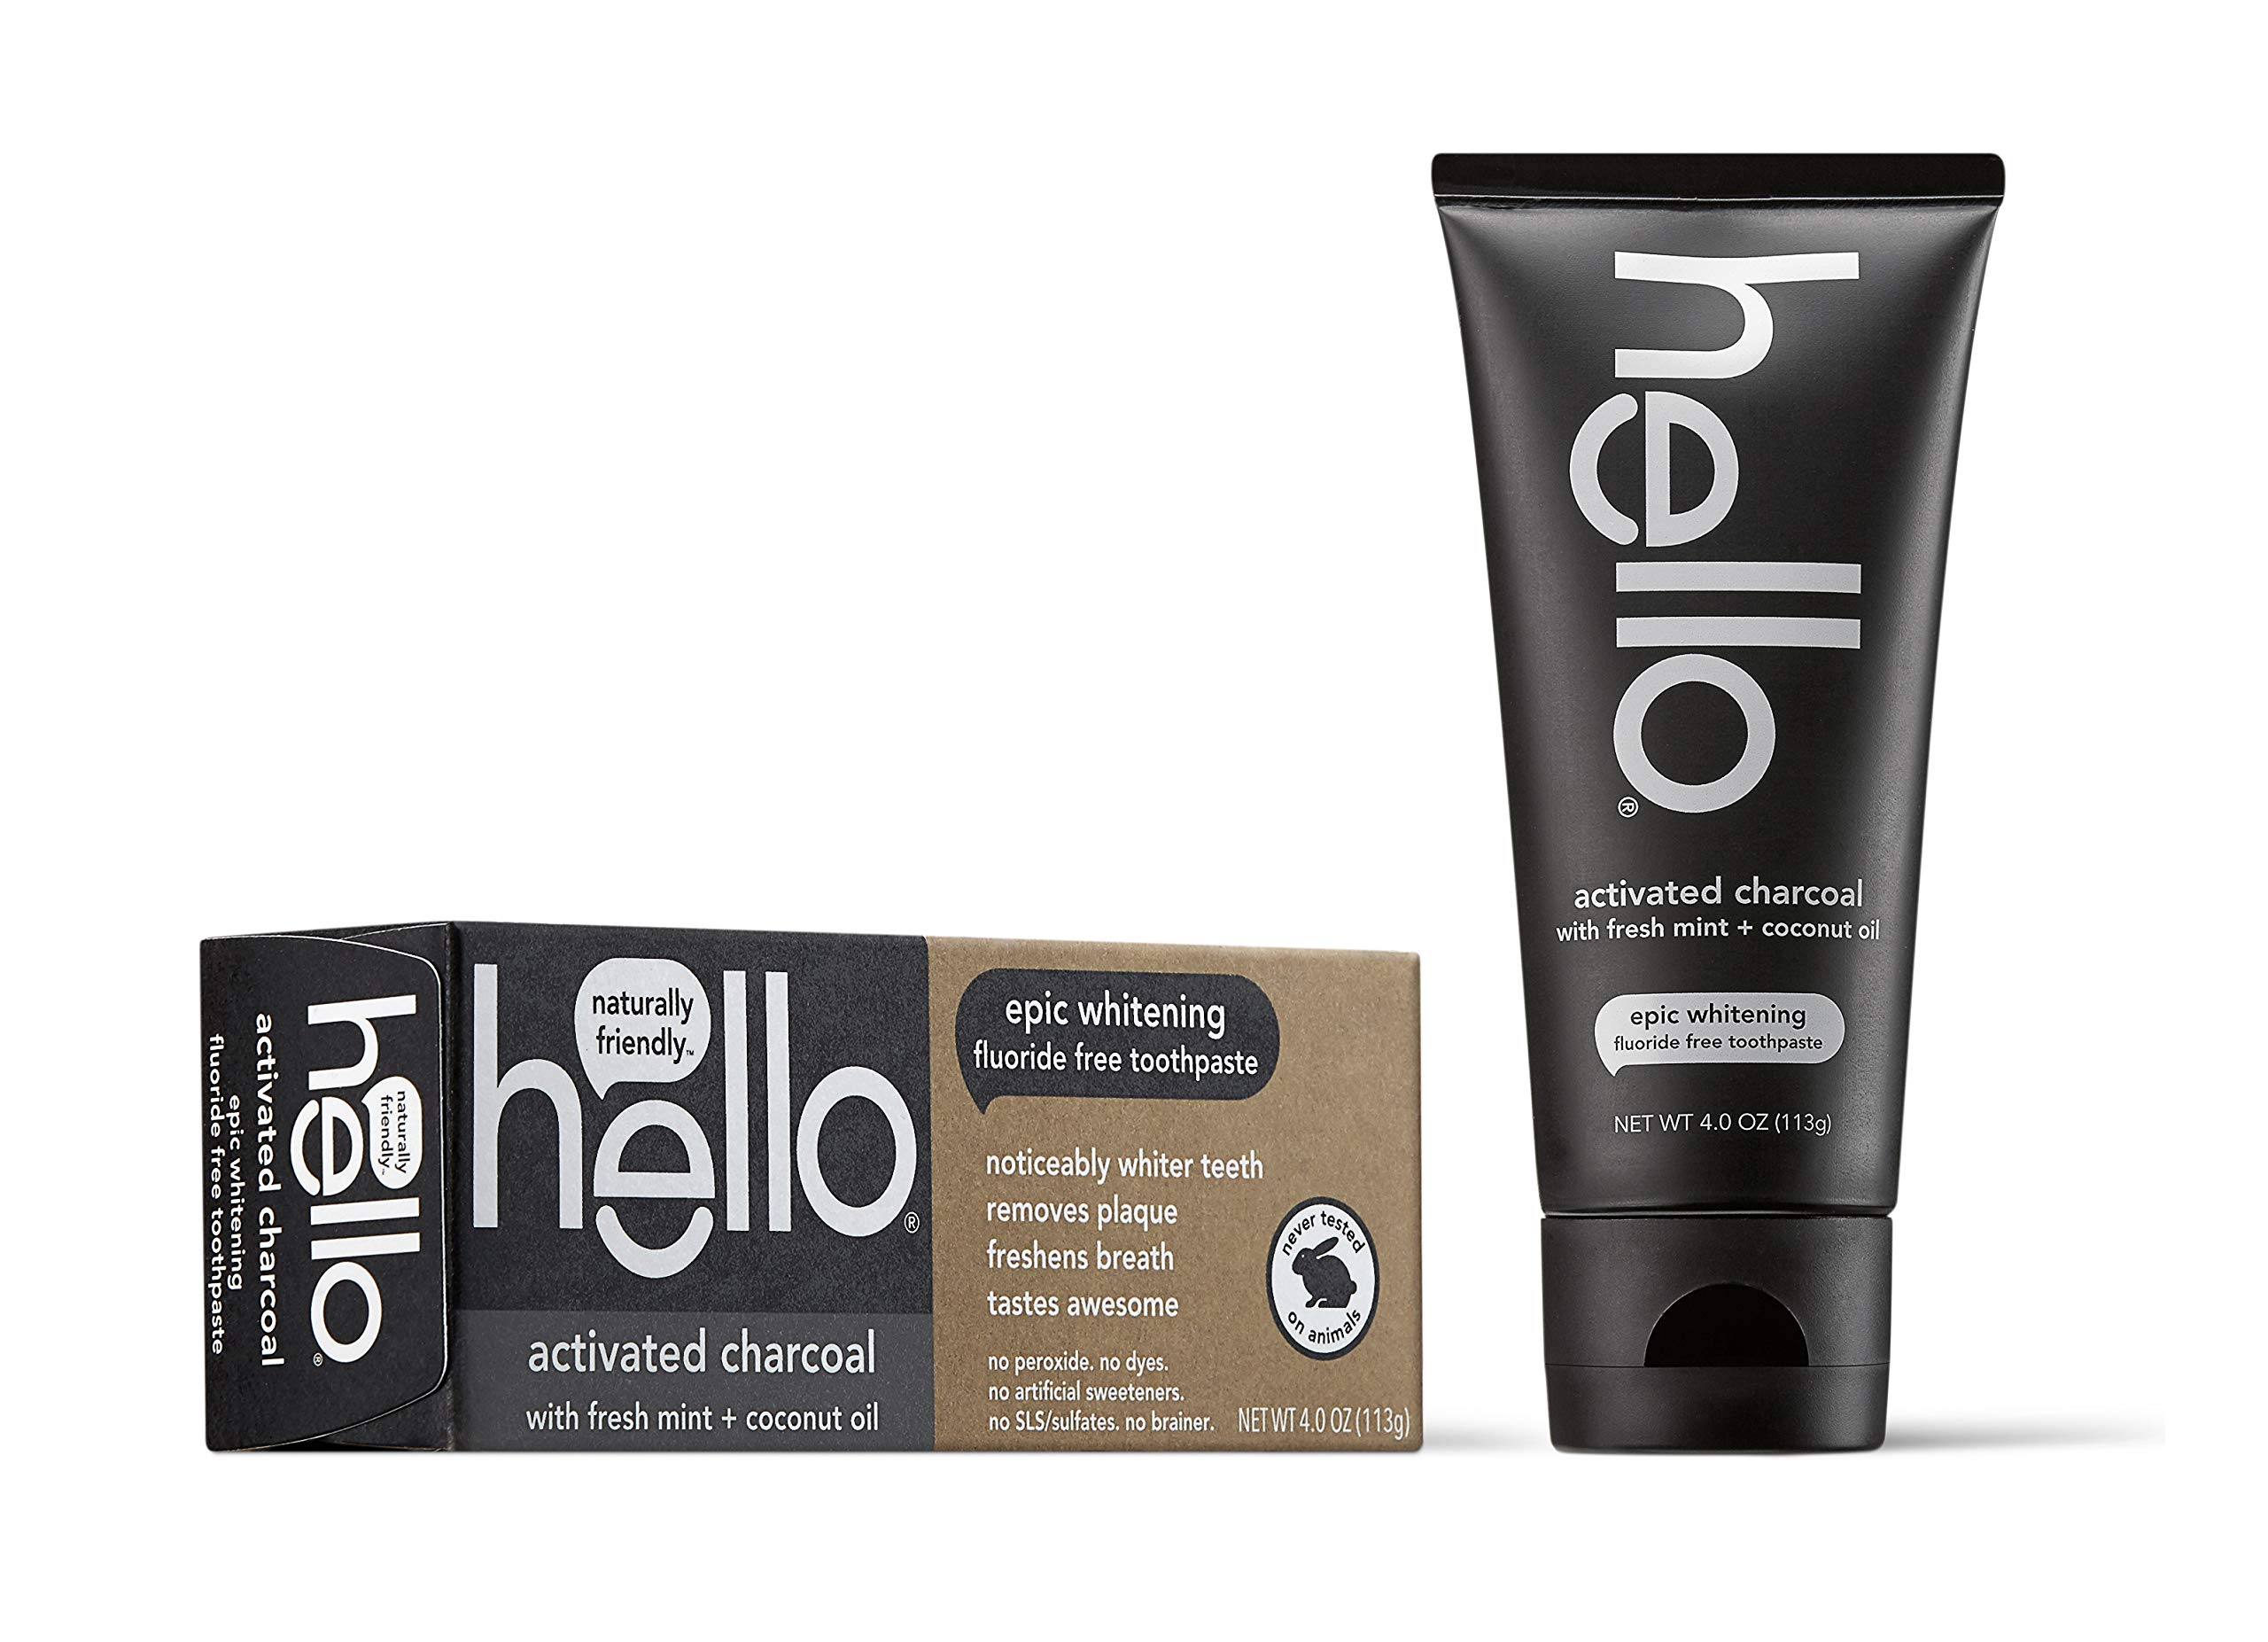 Hello Activated Charcoal Teeth Whitening Toothpaste